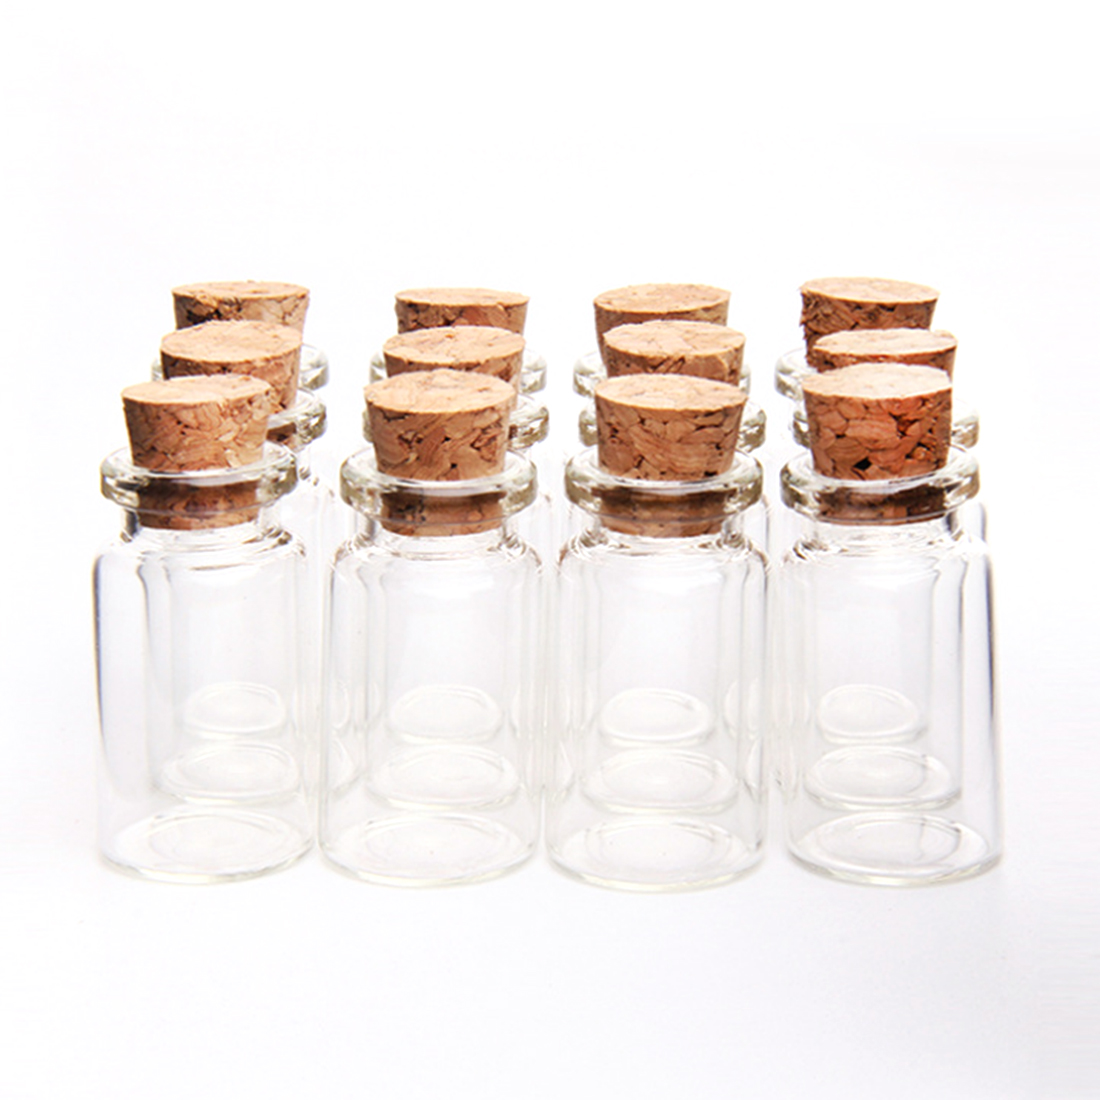 4pcs 7ml Mini Gl Bottles Empty Sample Jars With Cork 22 40mm Storage Stoppers For Diy Craft Decoration In From Home